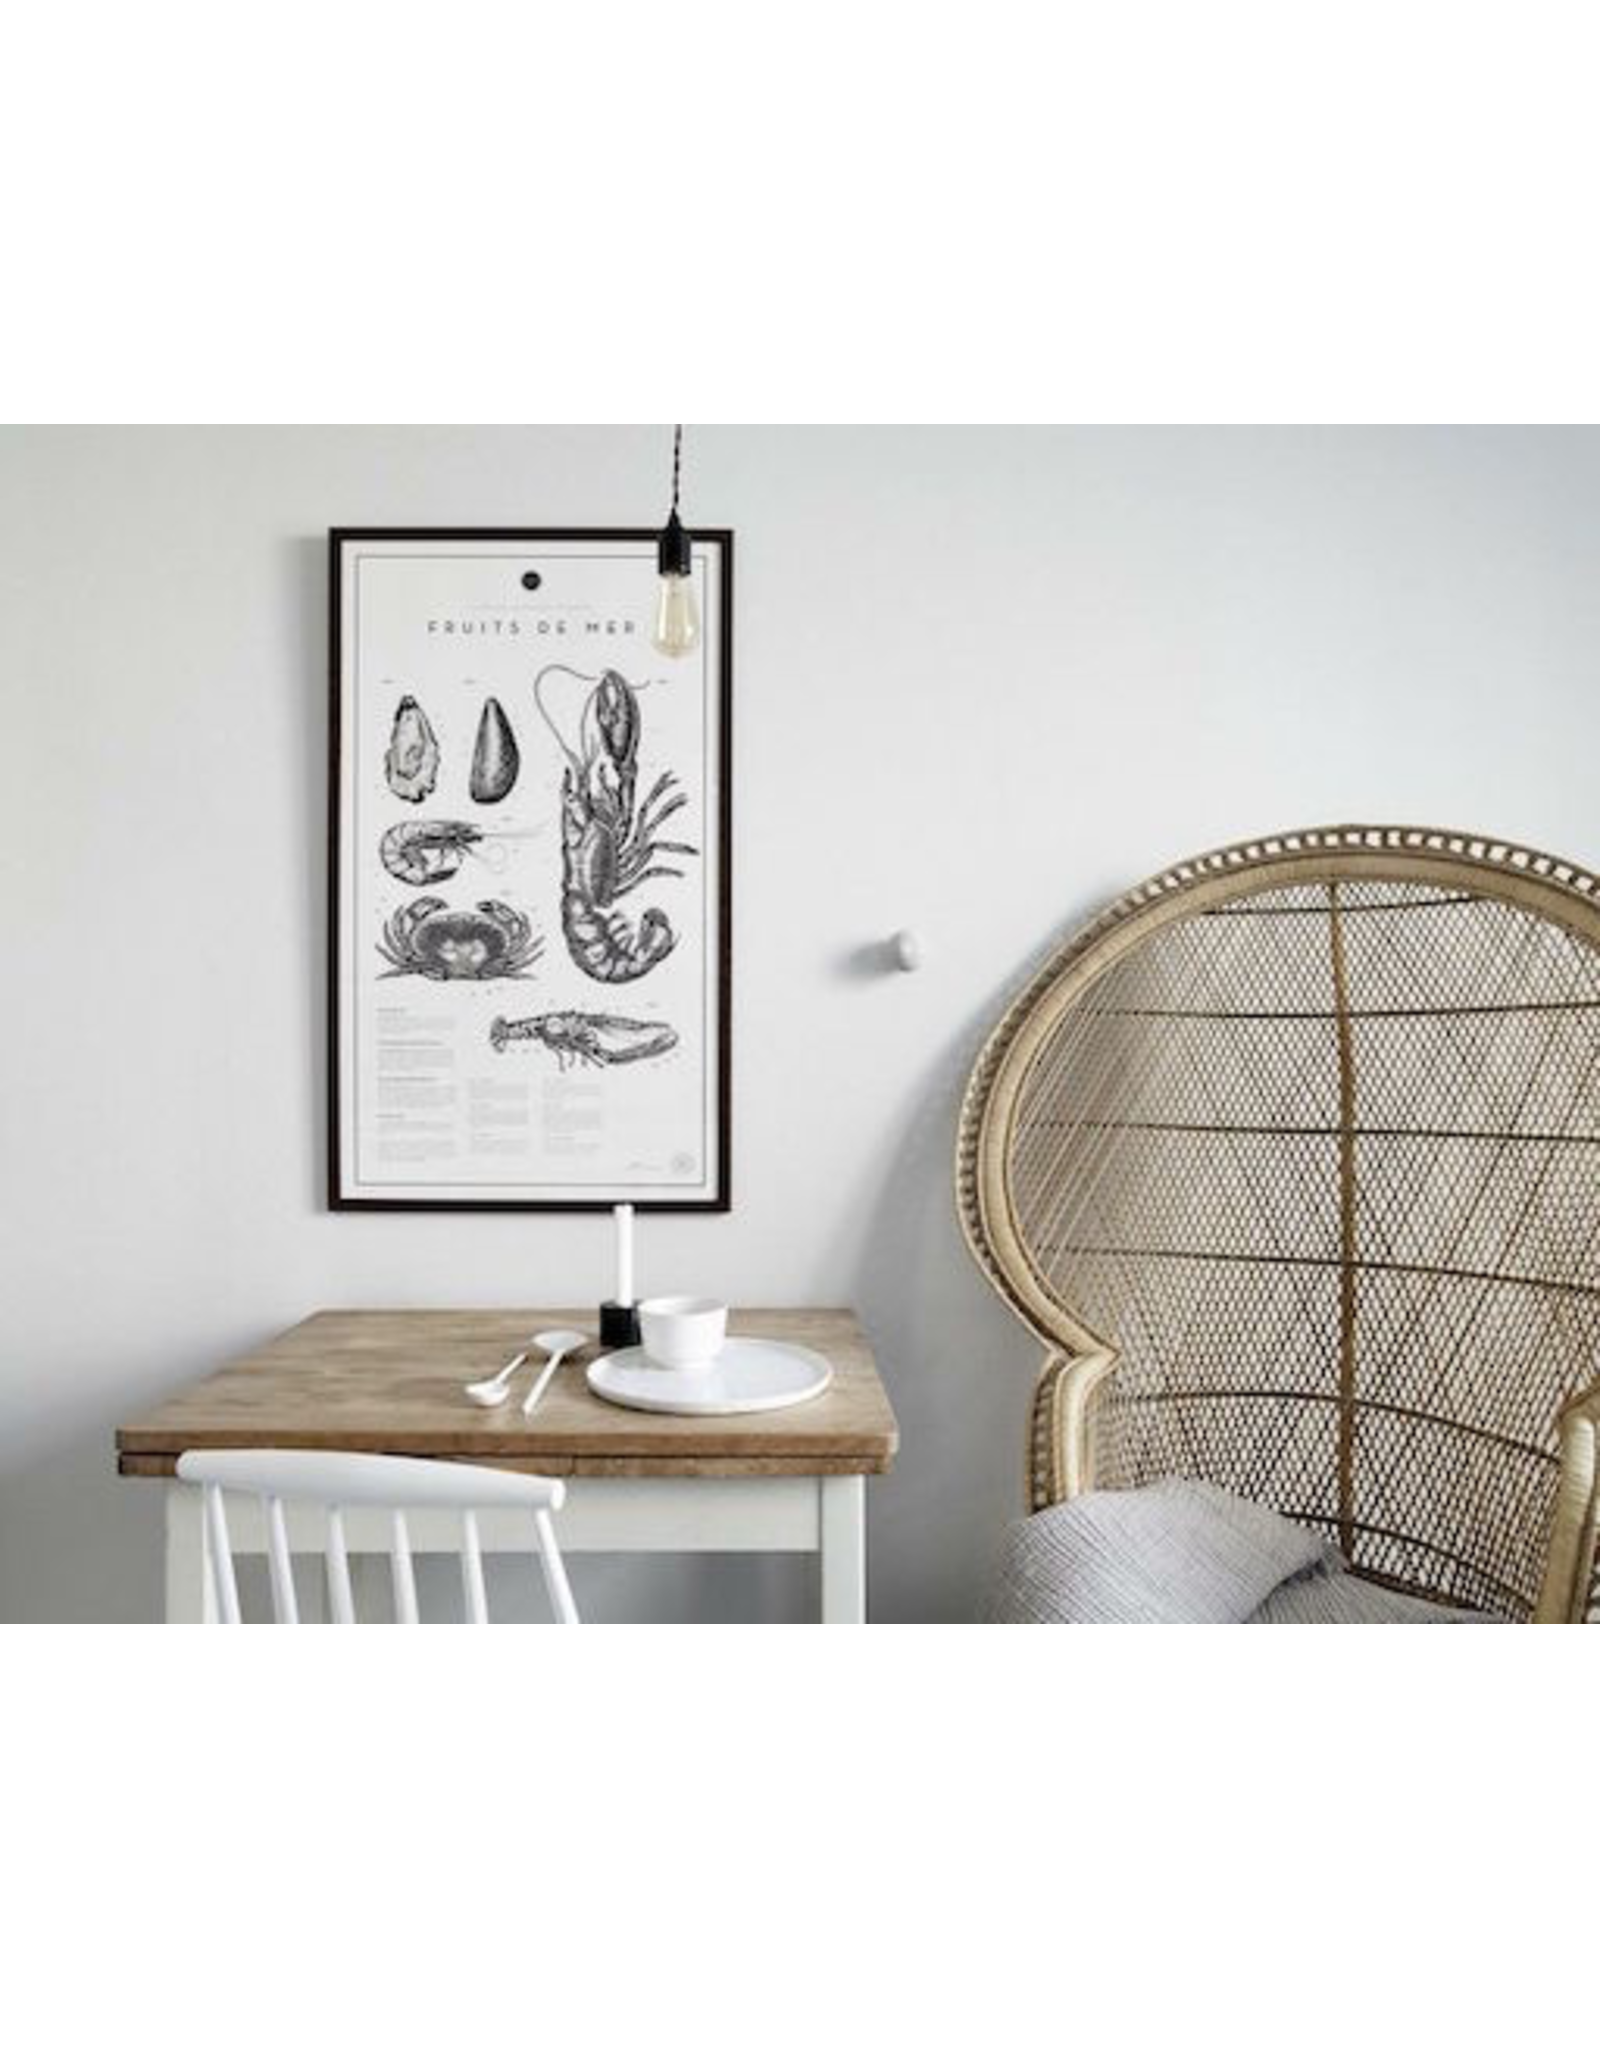 FRUITS DE MER FROM THE SPRING SUMMER COLLECTION 2016, FRAMED